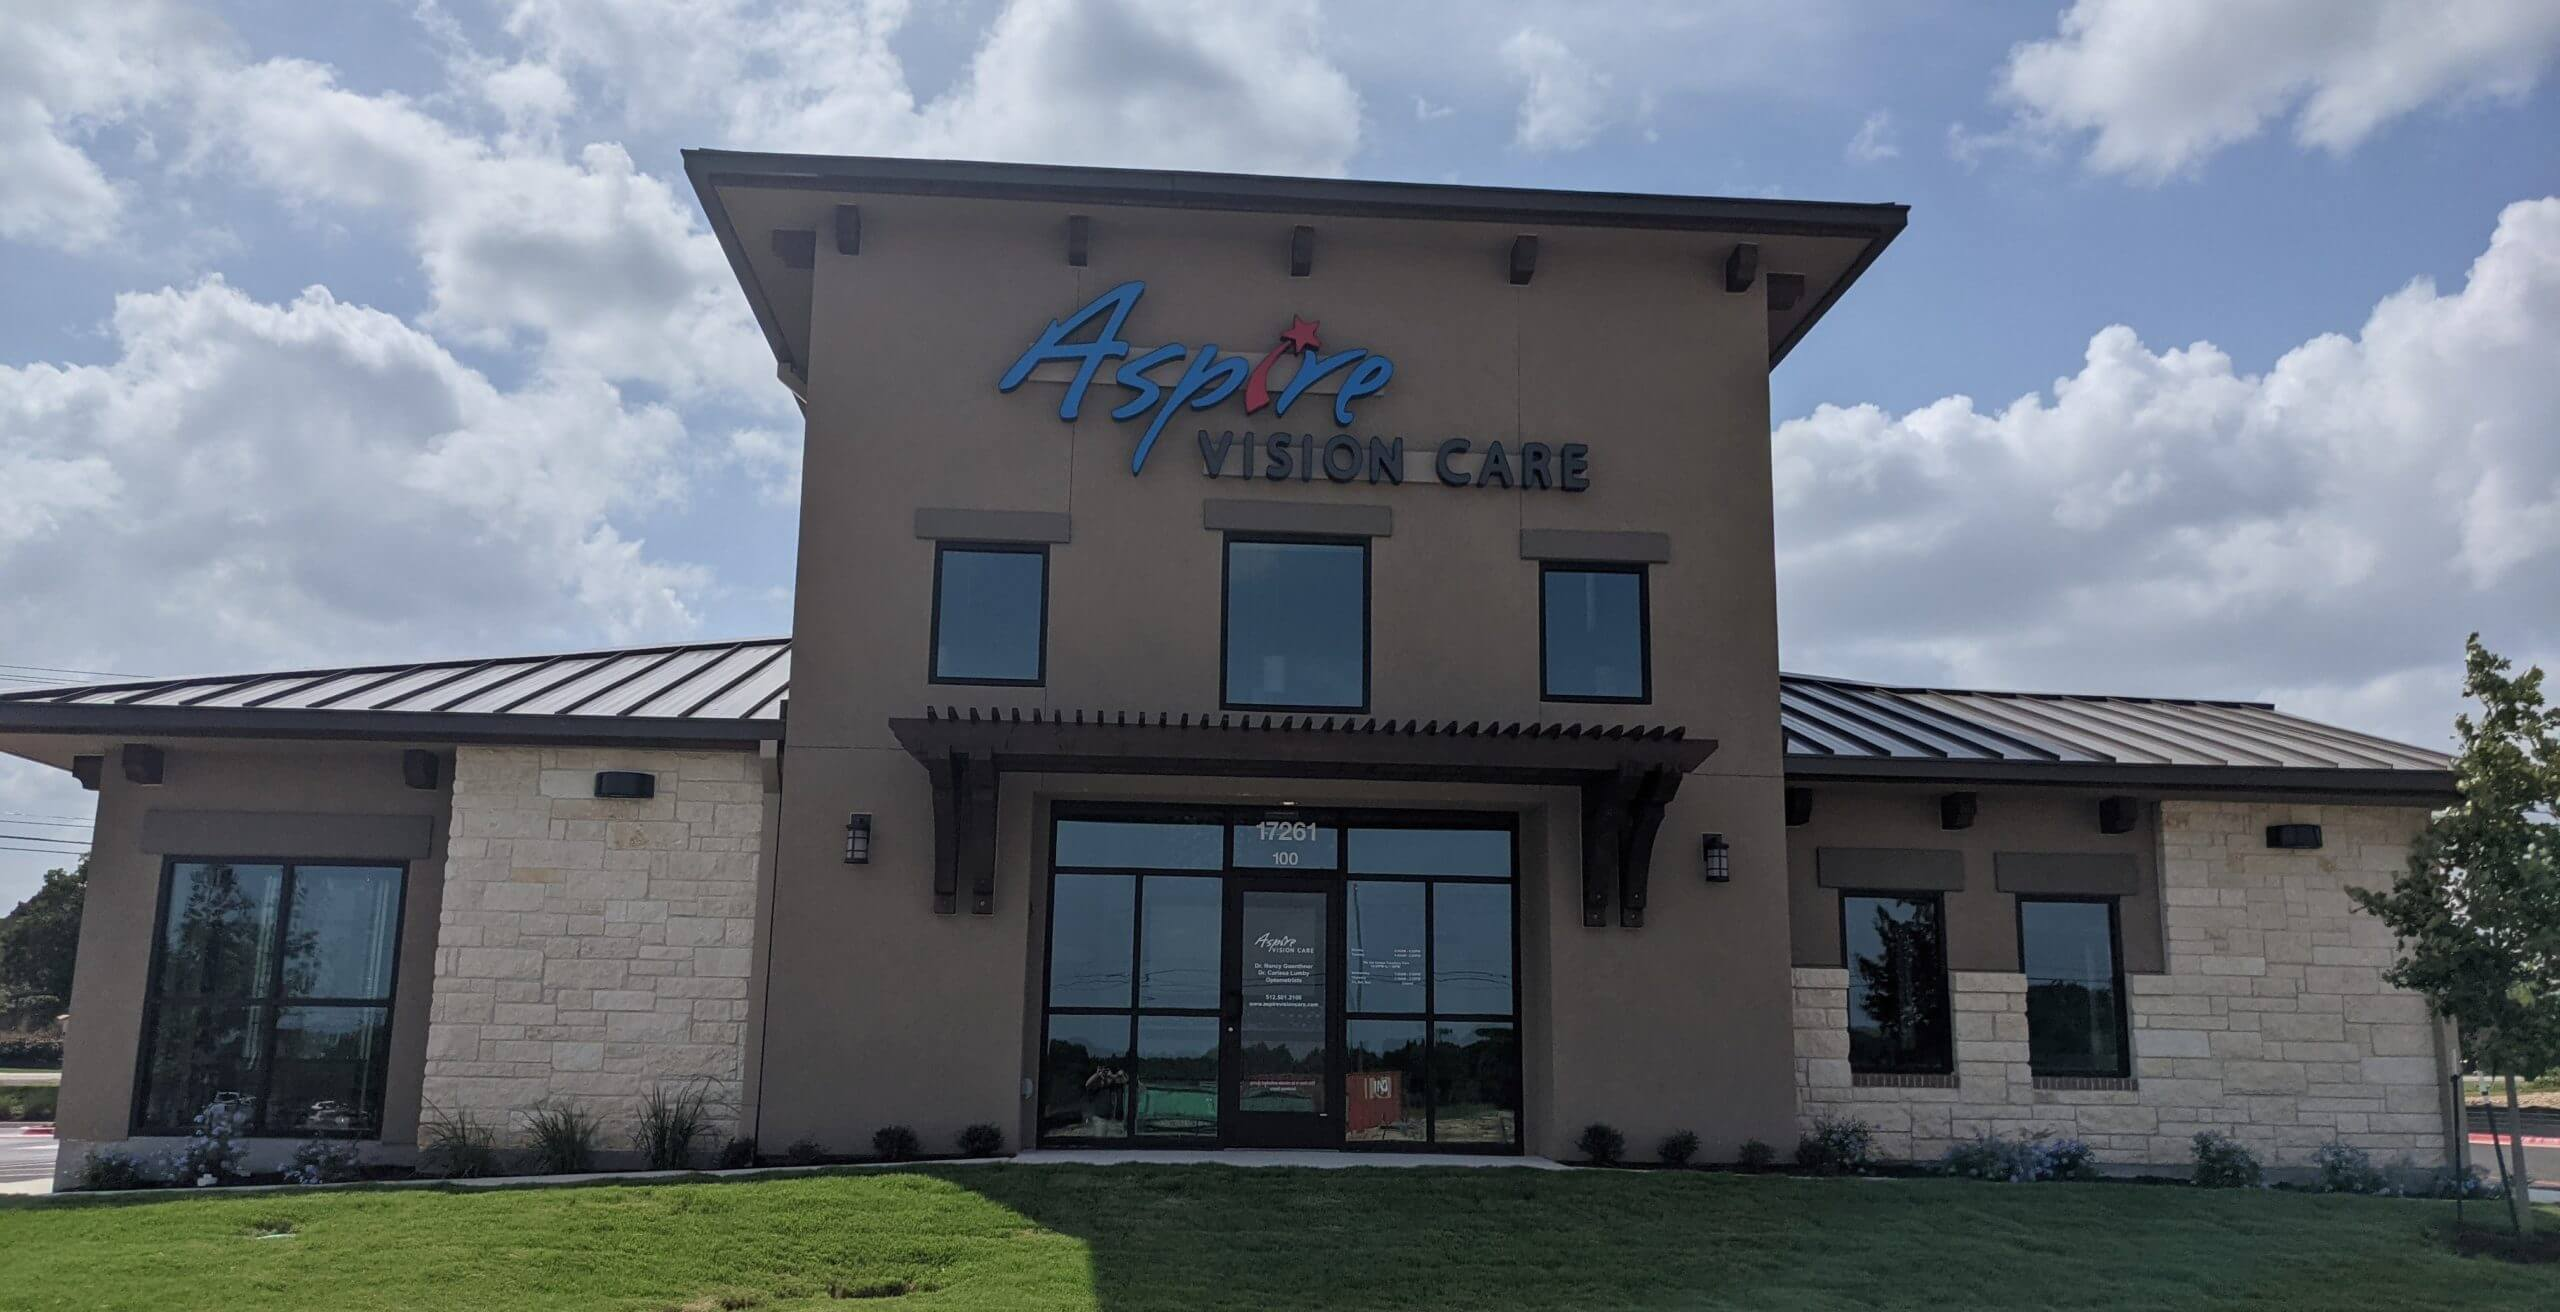 Aspire Vision Care Our New Optometry Office in Round Rock, Texas